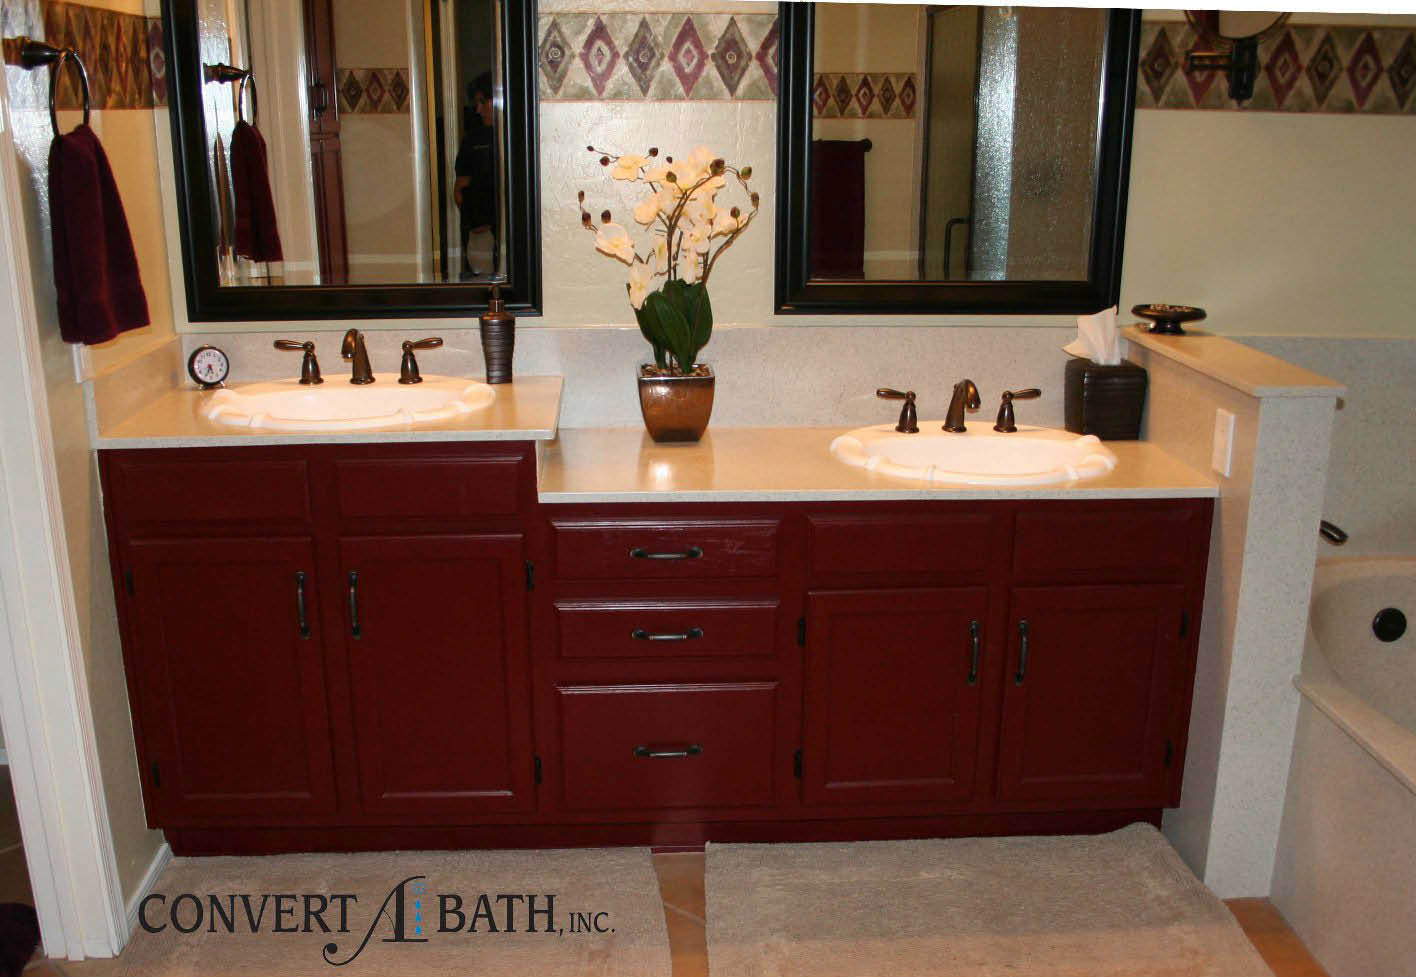 bathtub refinishing, new bathroom designs, cost shower remodel Bathroom Sinks in AZ